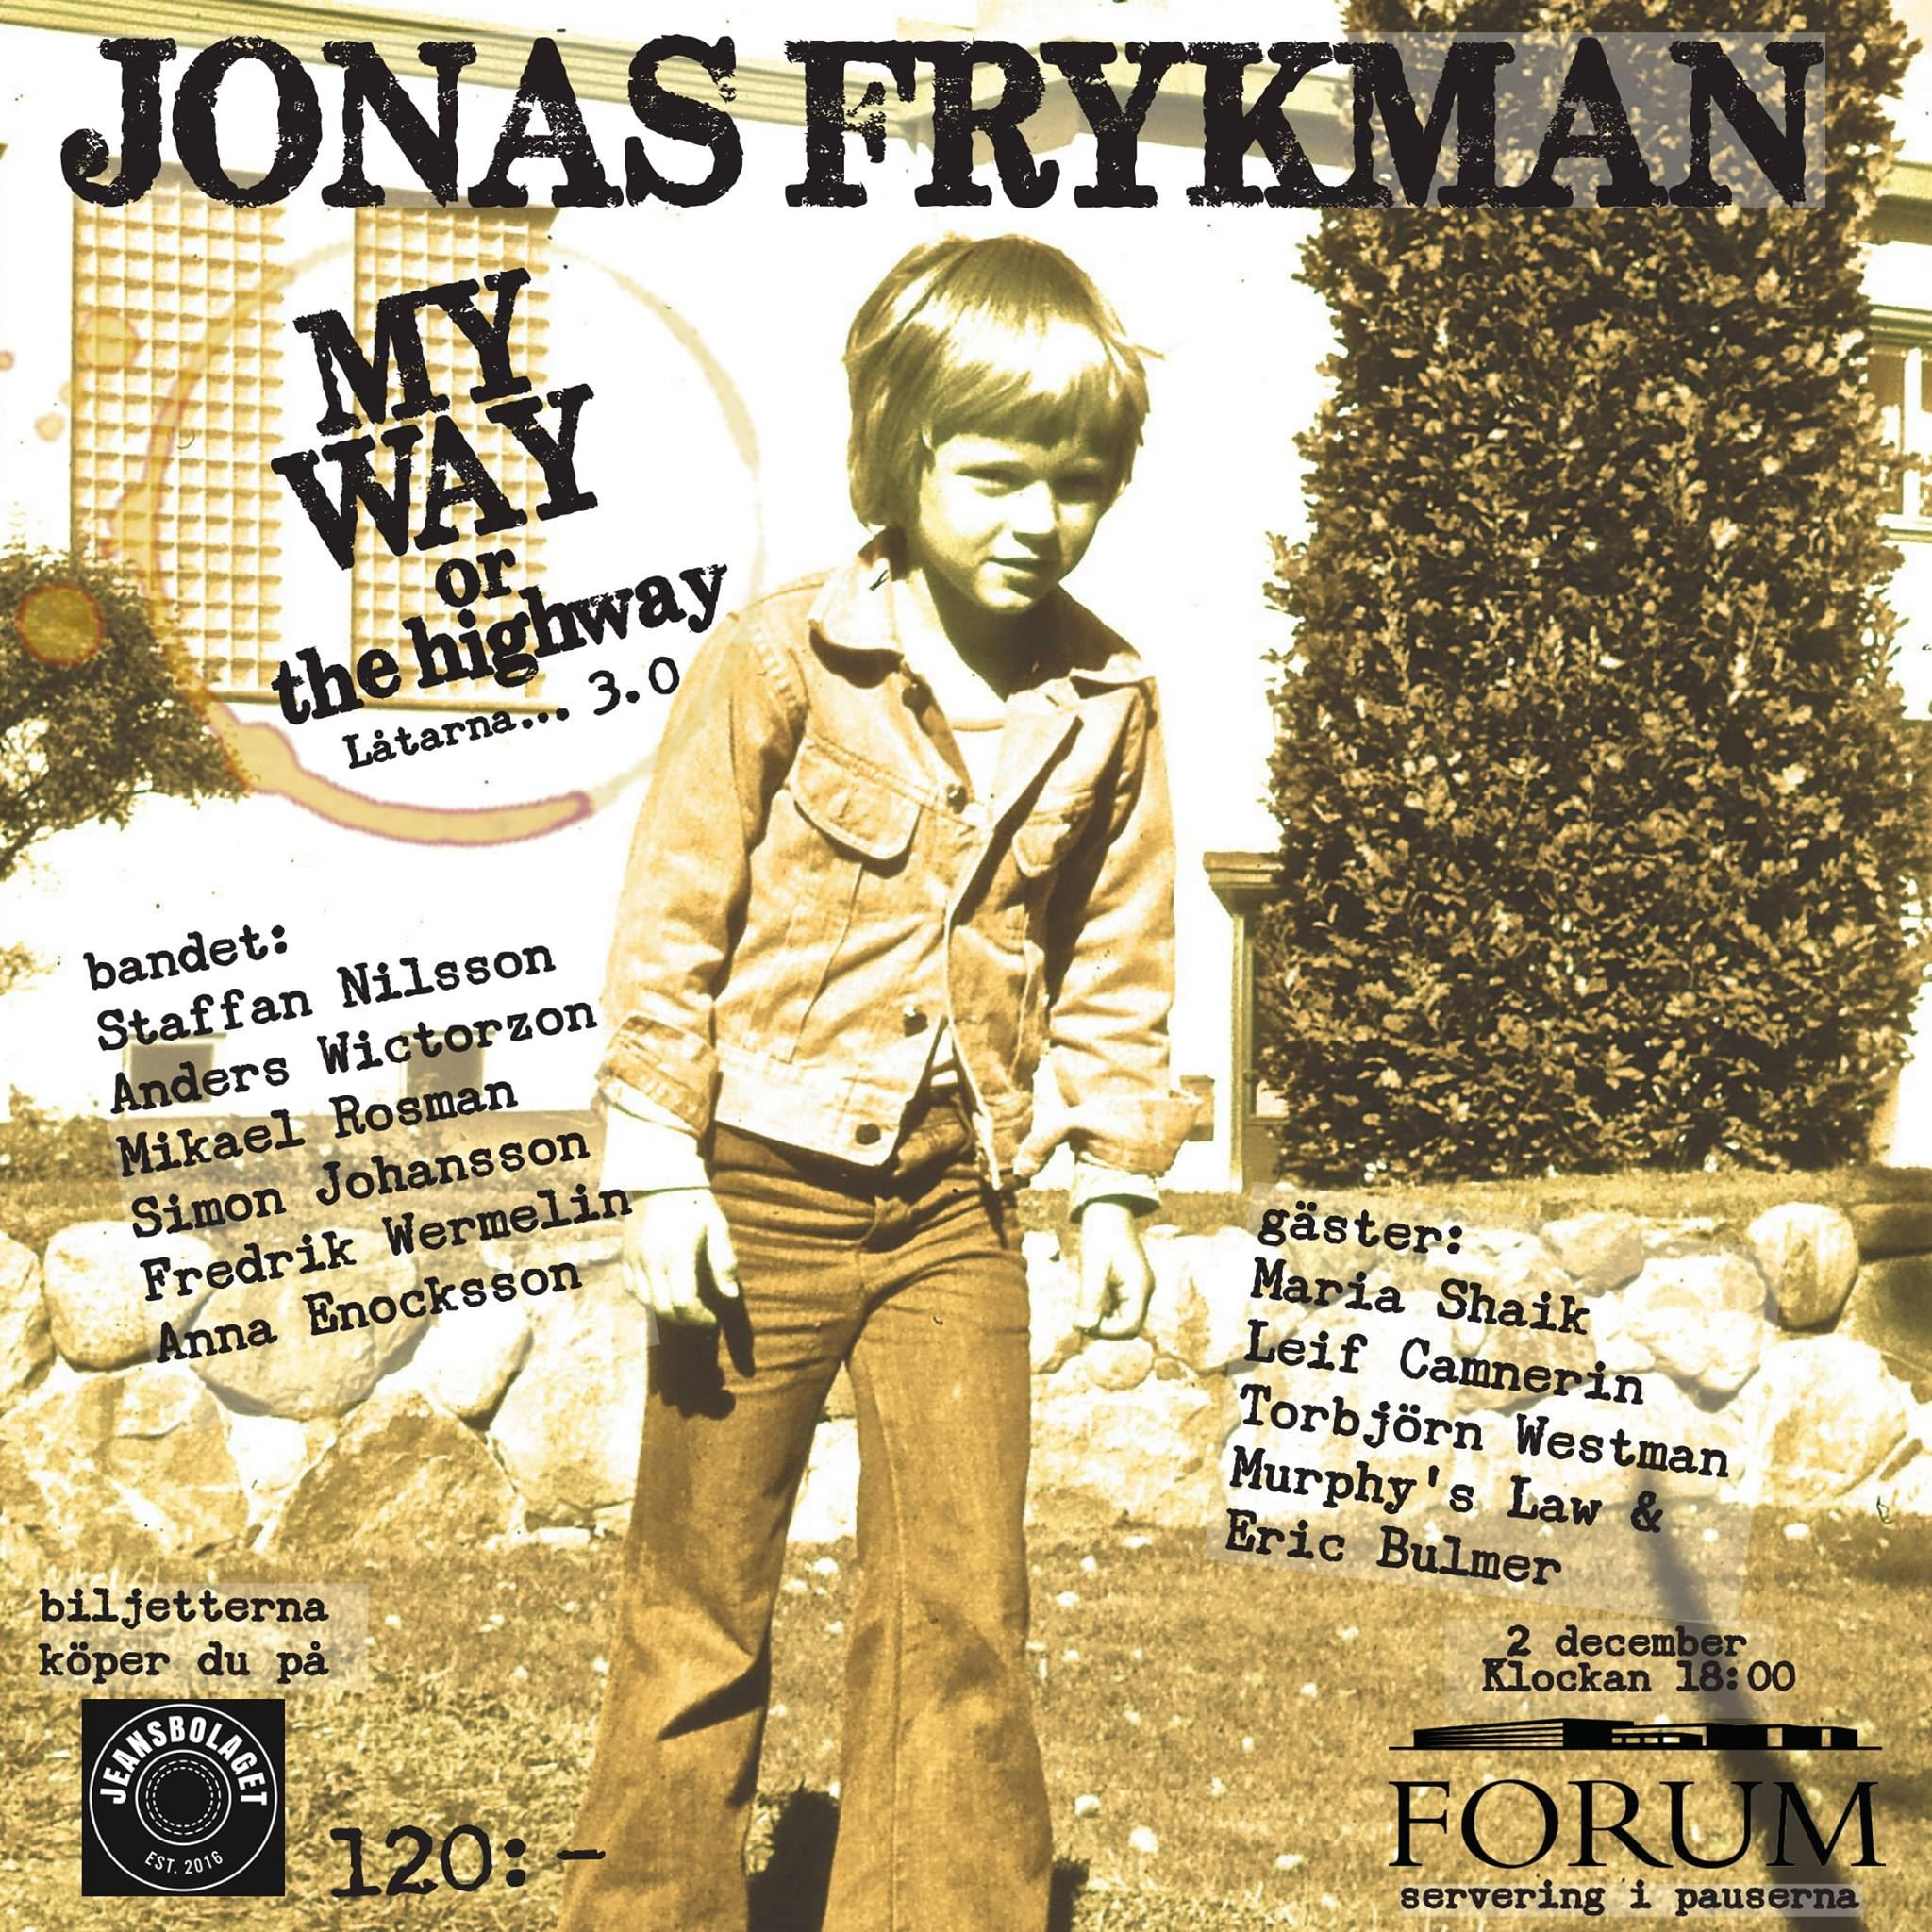 Jonas Frykman, My way or the highway